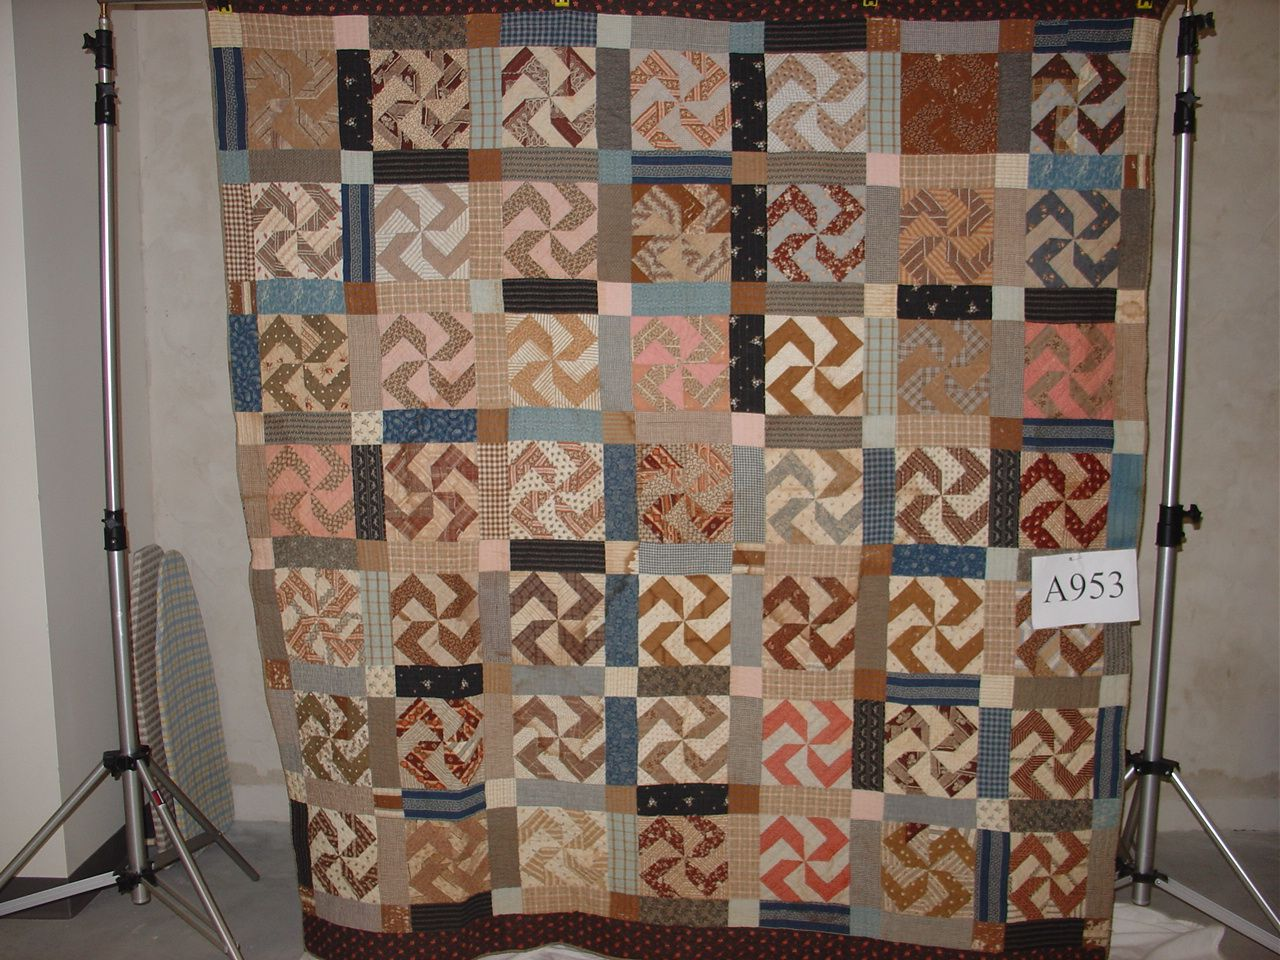 Swastika quilt (pre-WWII) | Reproduction Quilts | Pinterest ... : swastika quilt - Adamdwight.com